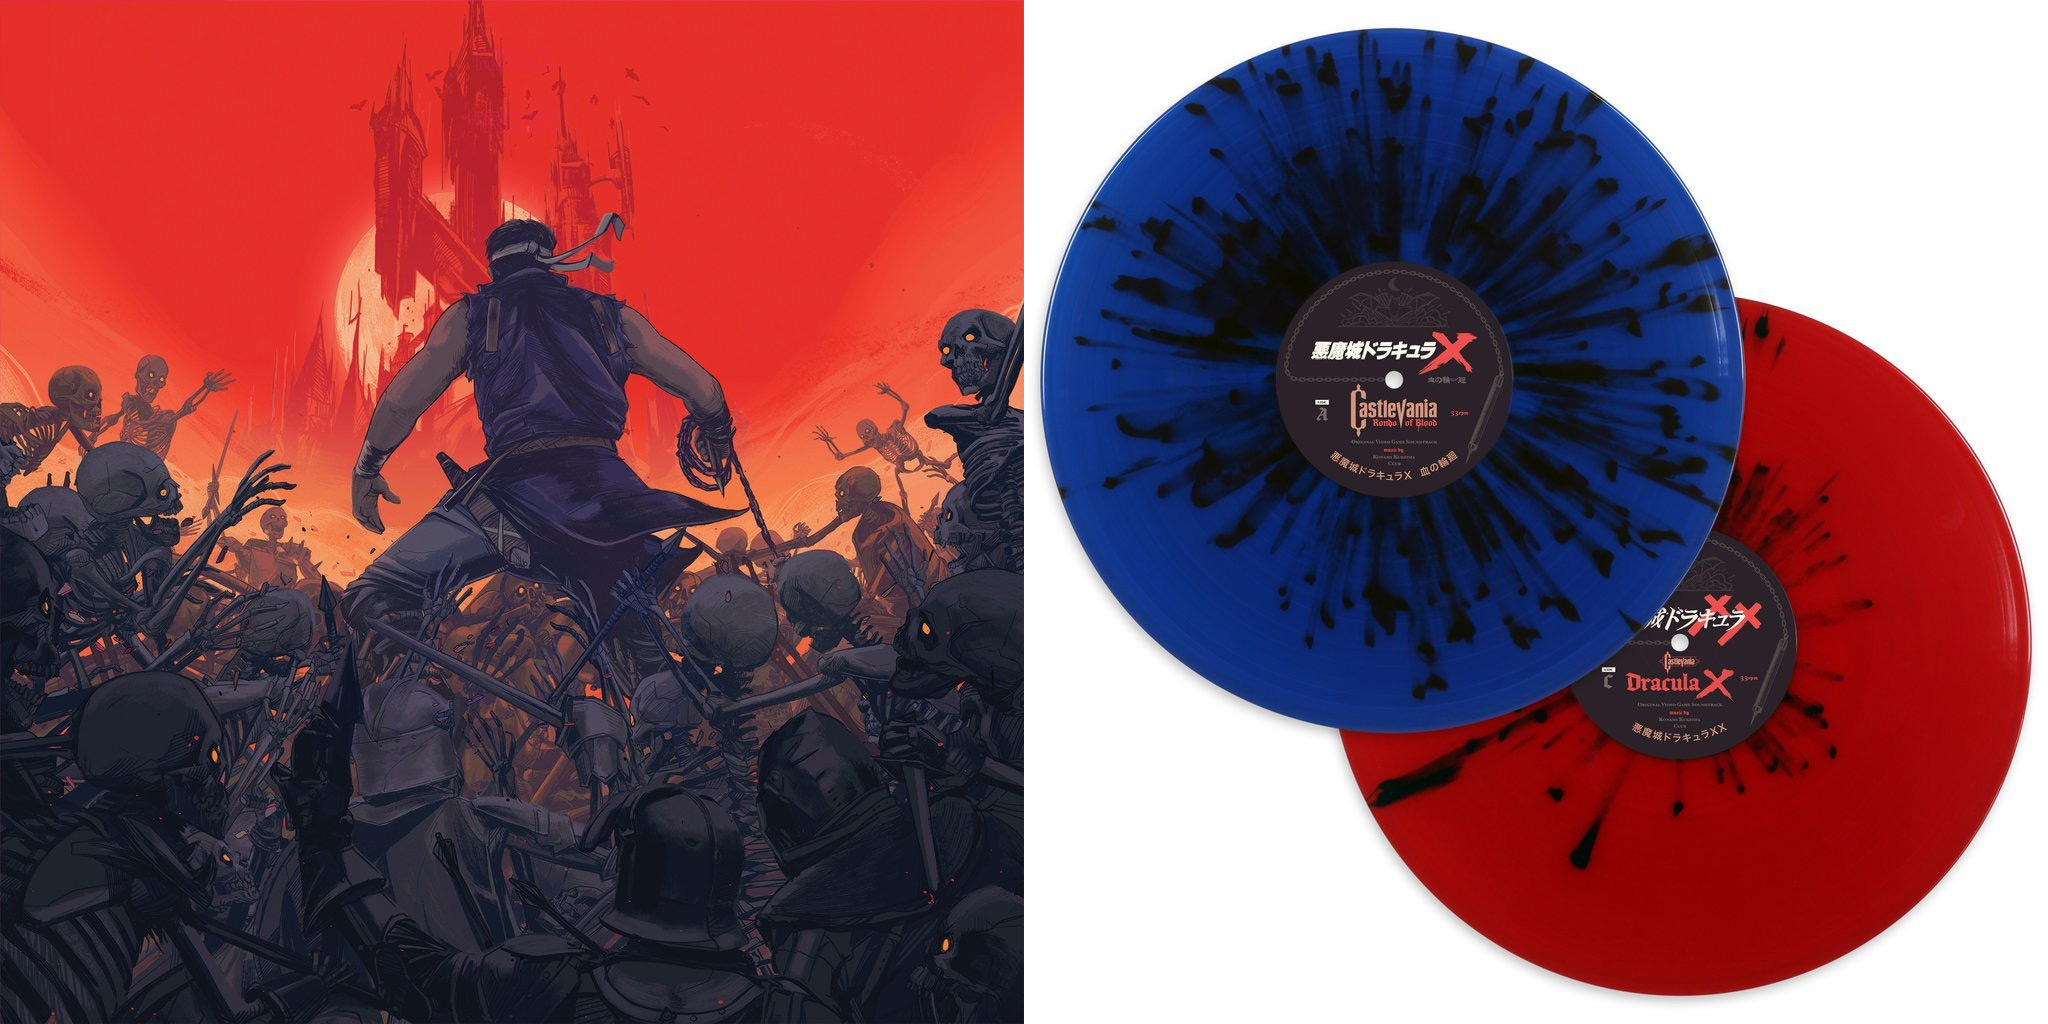 The Rondo of Blood vinyl with art by Oliver Barrett